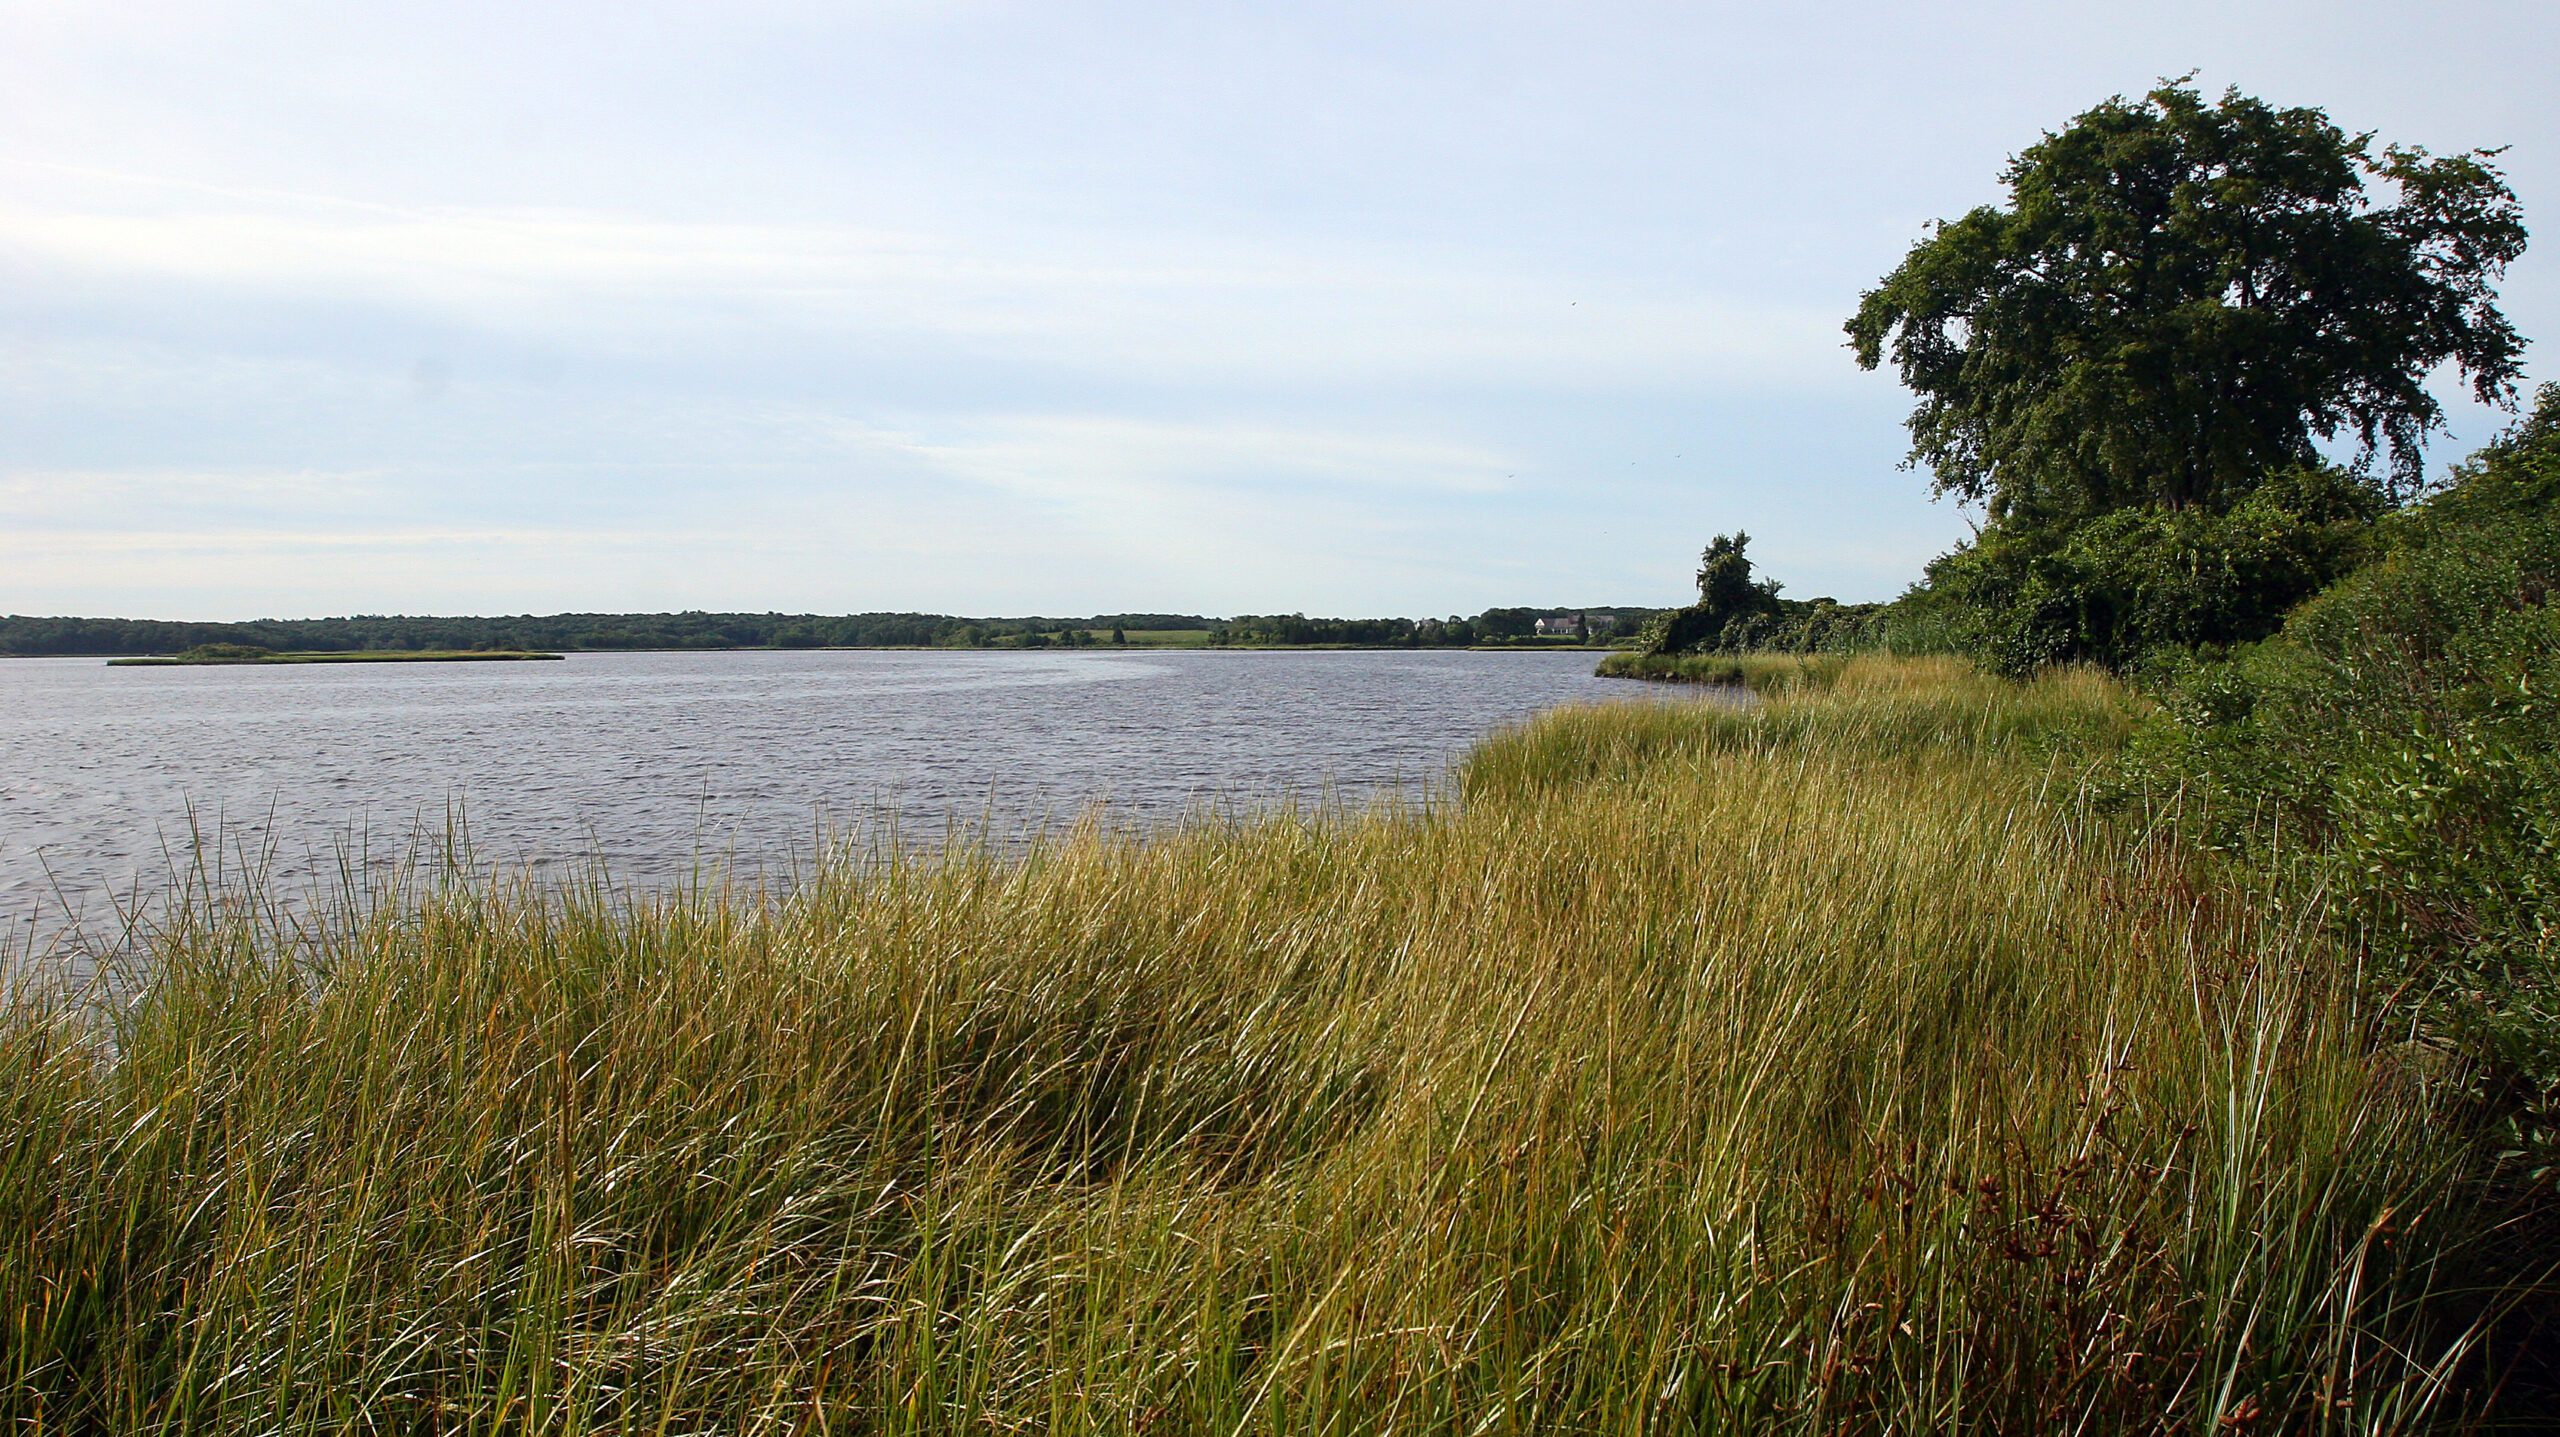 View of tidal river from the banks